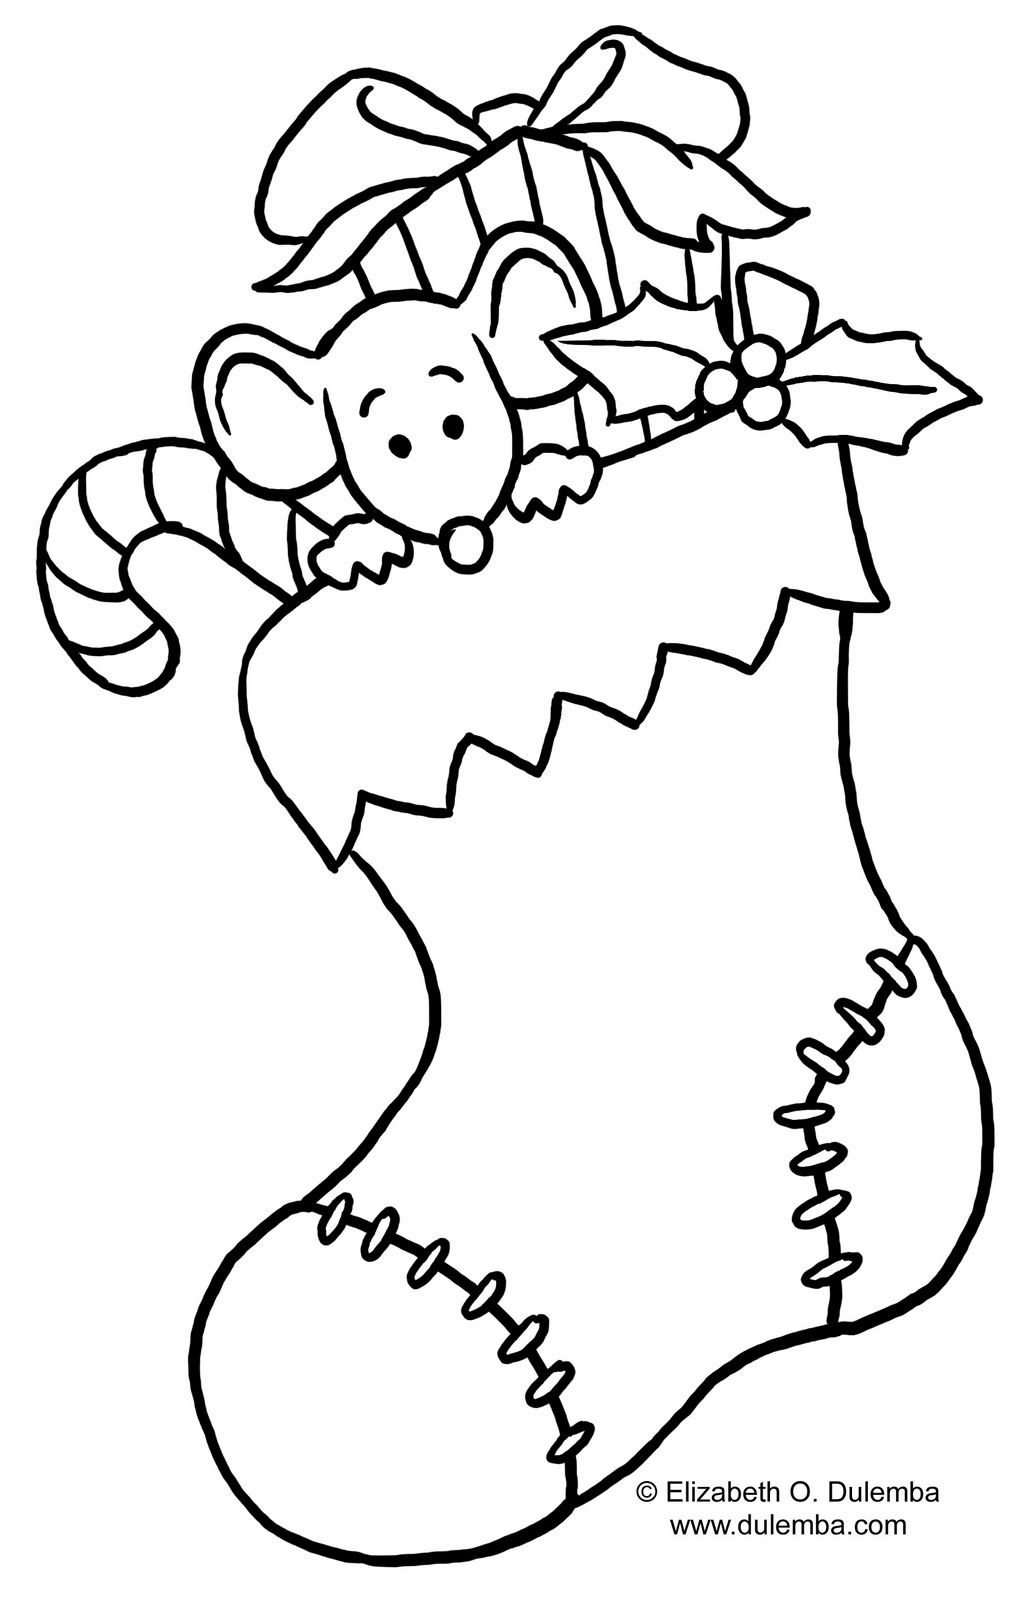 ChristmasStocking coloring page besides barbie coloring book baseball 1 on barbie coloring book baseball additionally barbie coloring book baseball 2 on barbie coloring book baseball as well as barbie coloring book baseball 3 on barbie coloring book baseball together with five senses preschool printables on barbie coloring book baseball